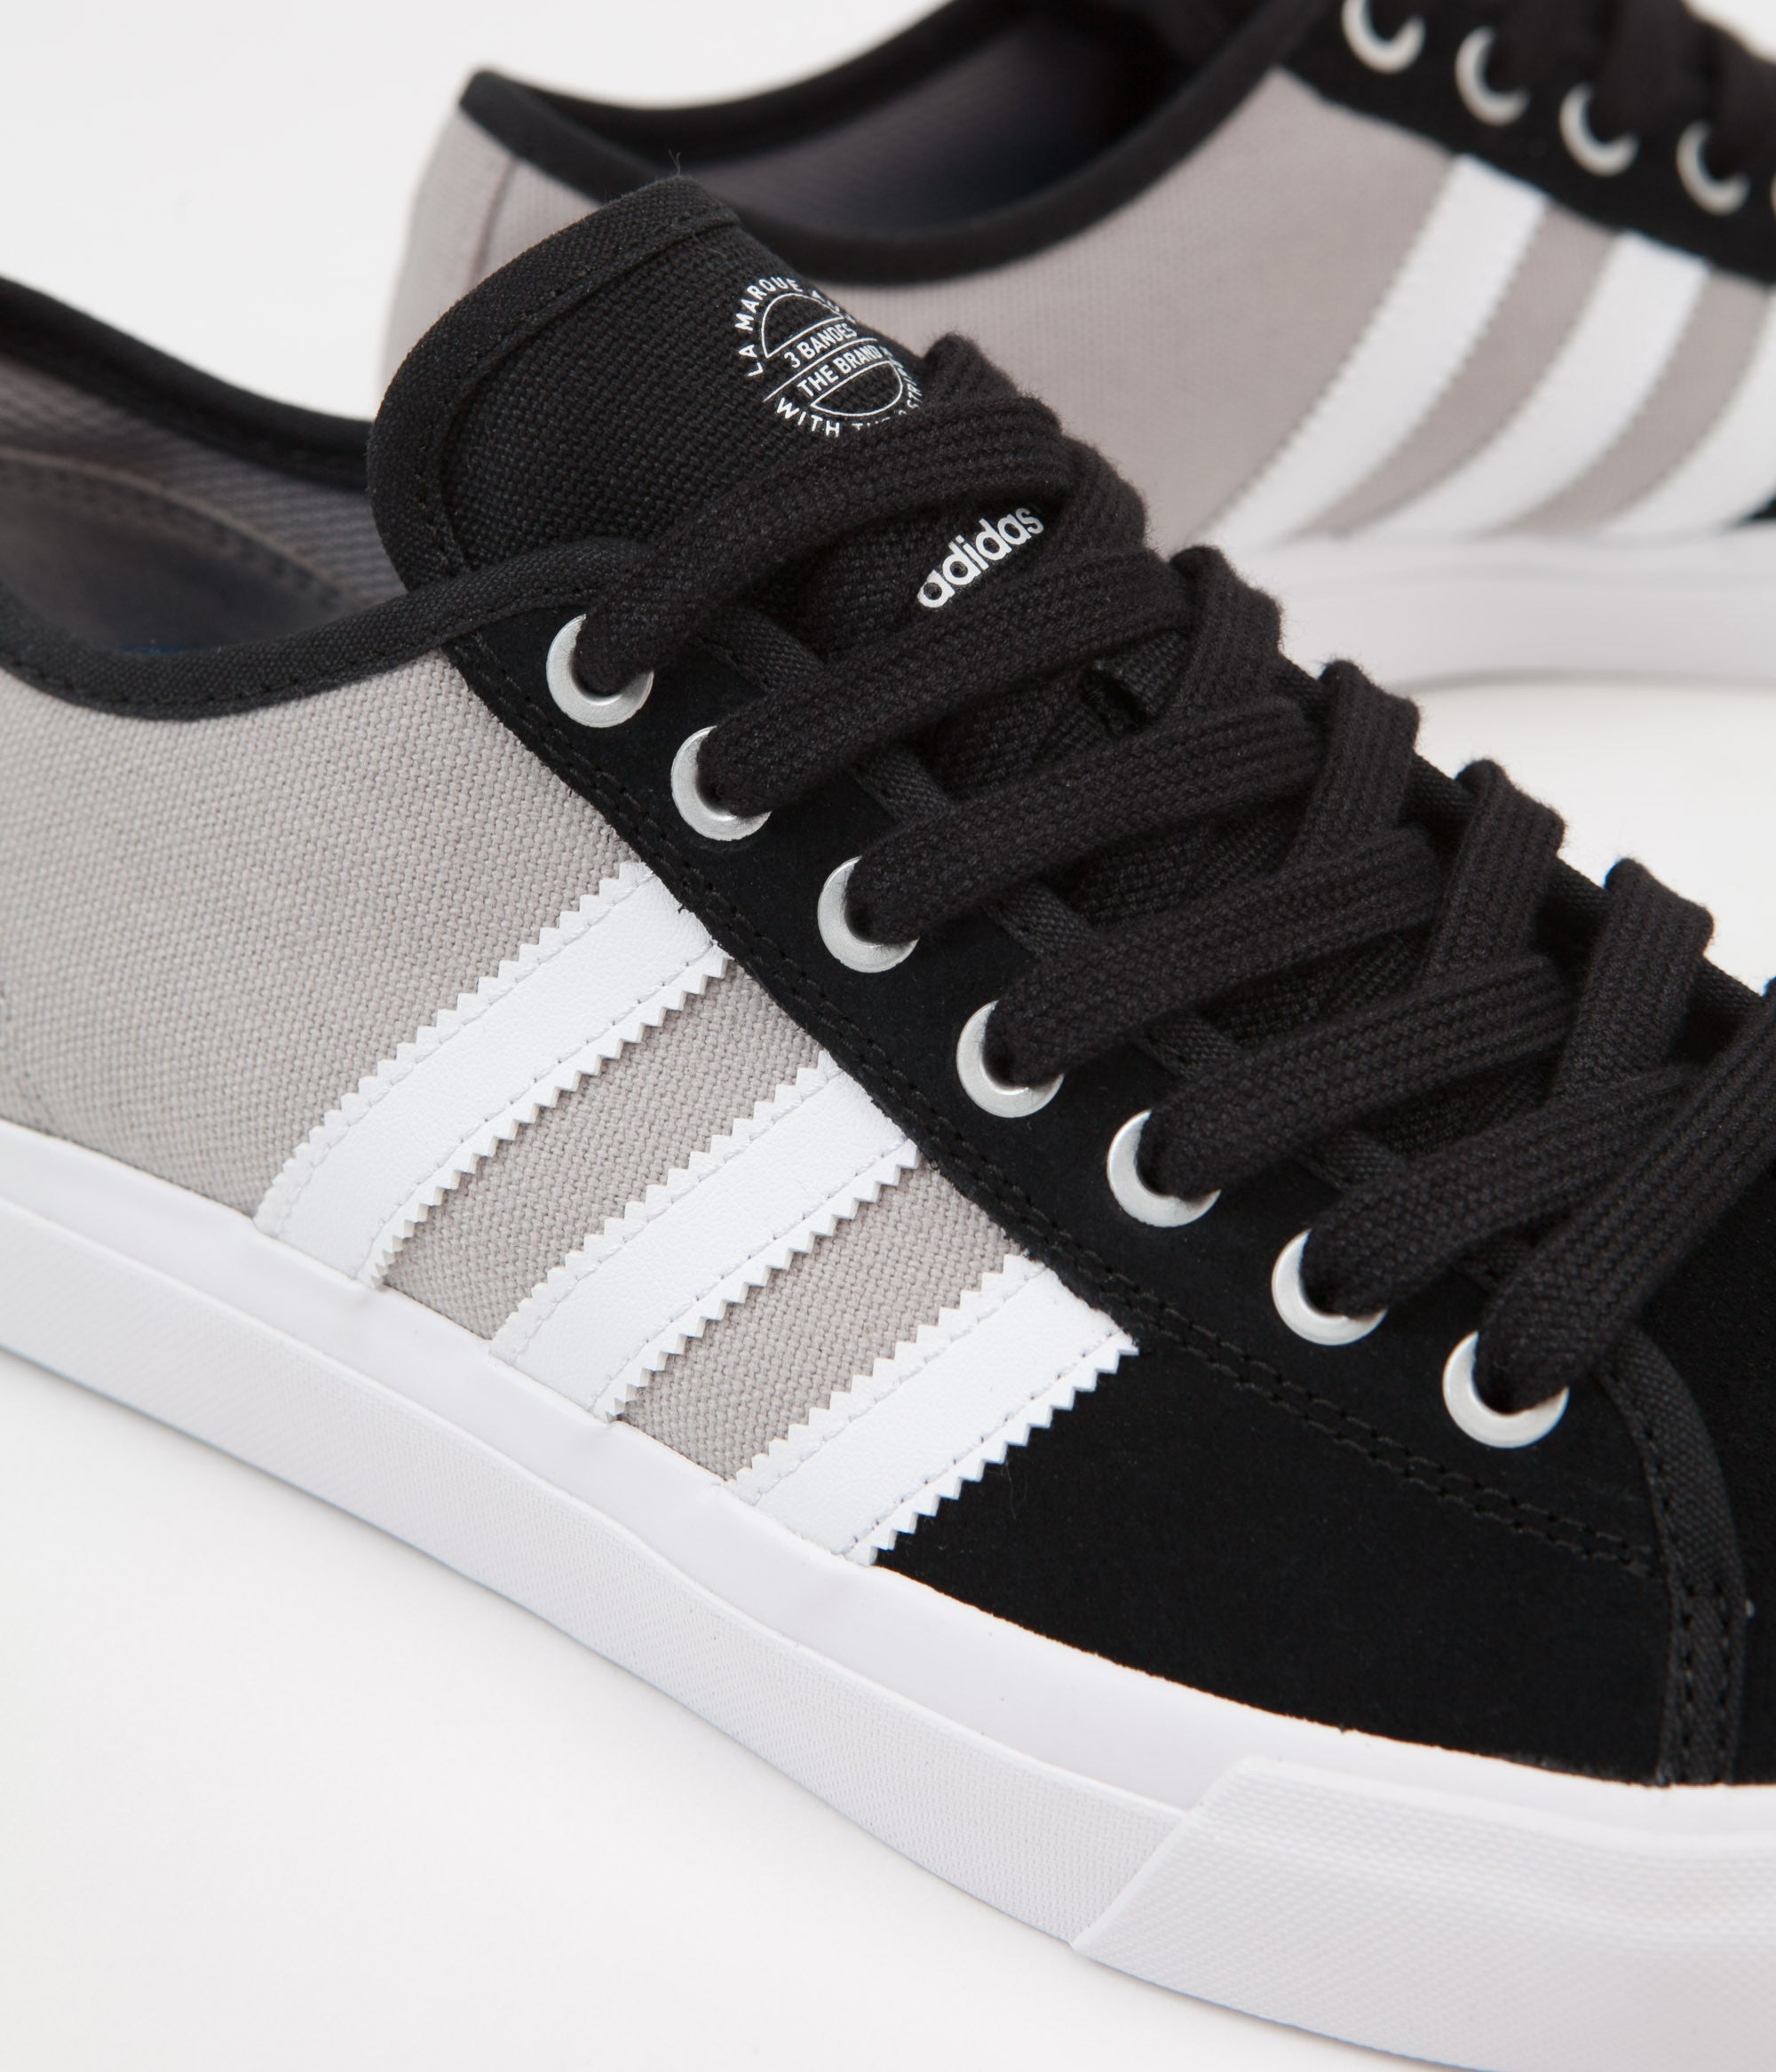 ... Adidas Matchcourt RX Shoes - Core Black   White   Customized ... a2d598ddc